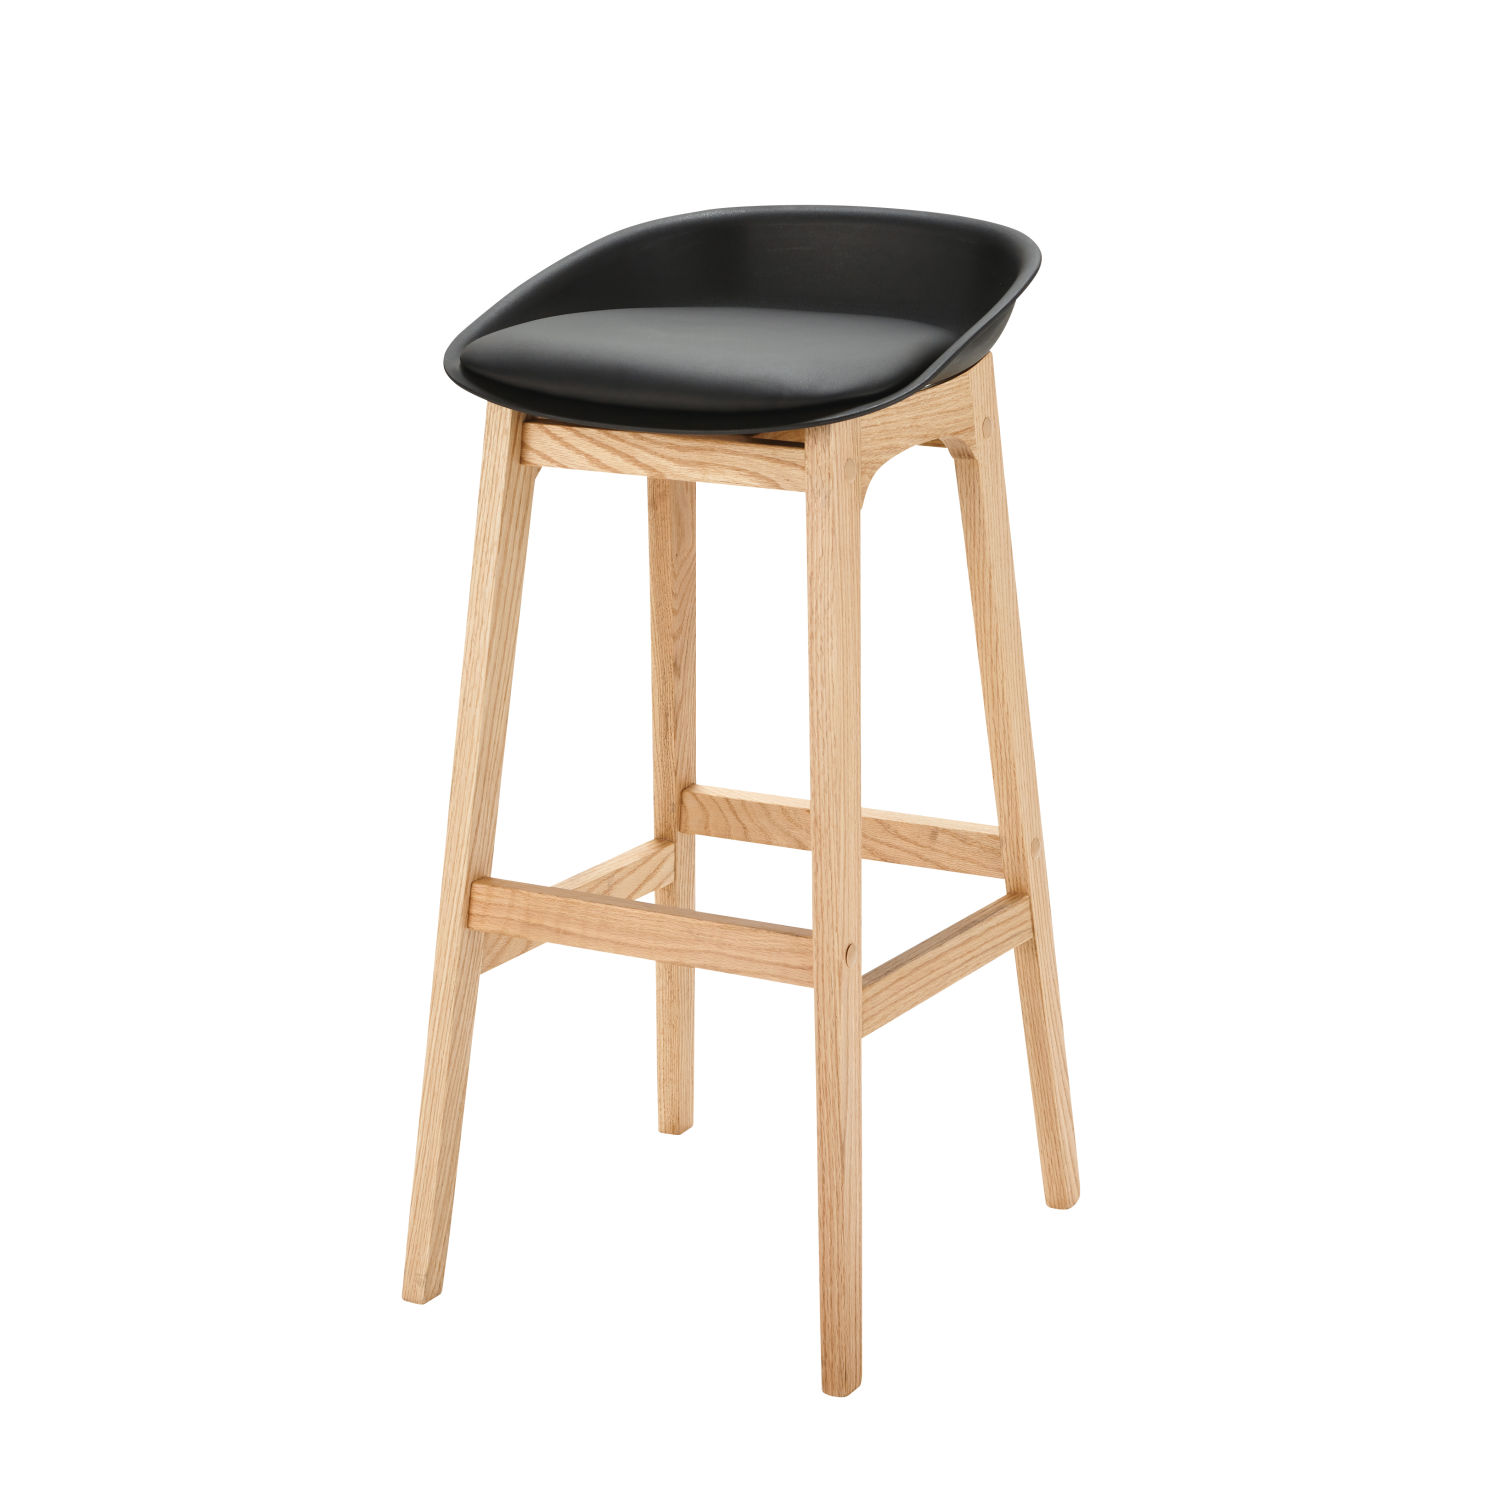 tabouret de bar style scandinave noir et ch ne massif h88. Black Bedroom Furniture Sets. Home Design Ideas